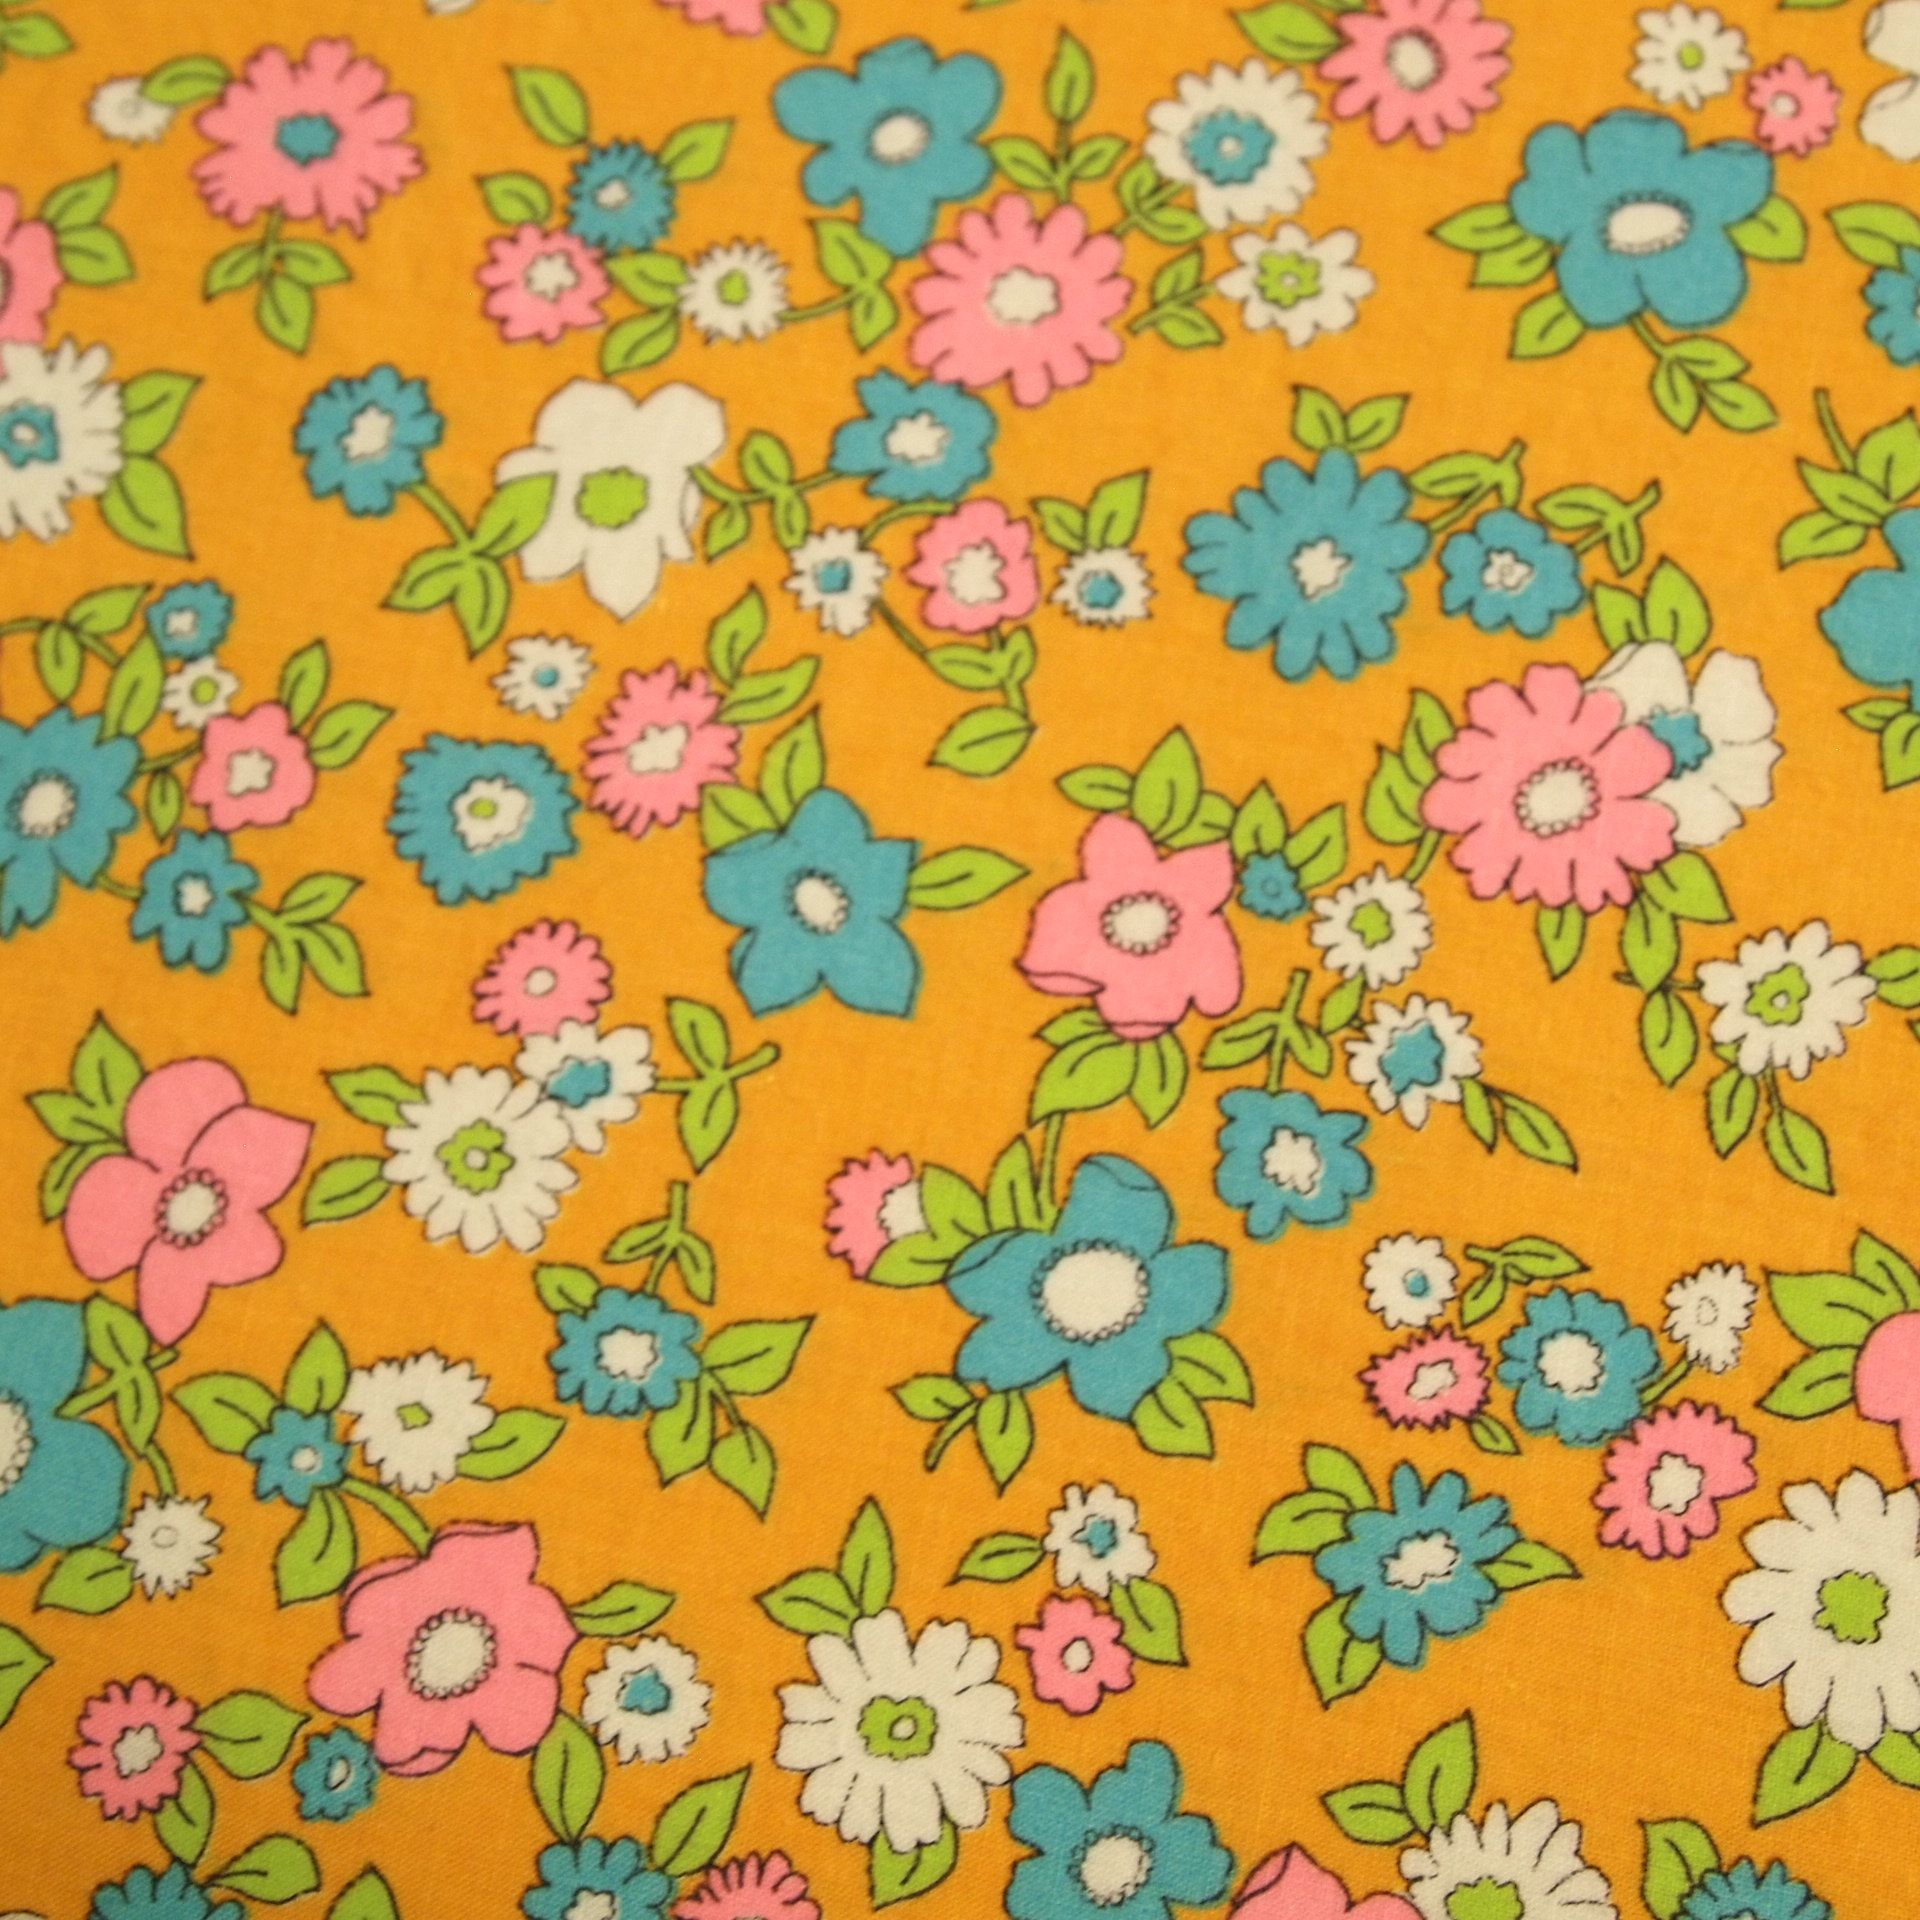 1960s flower patterns images for Vintage fabric